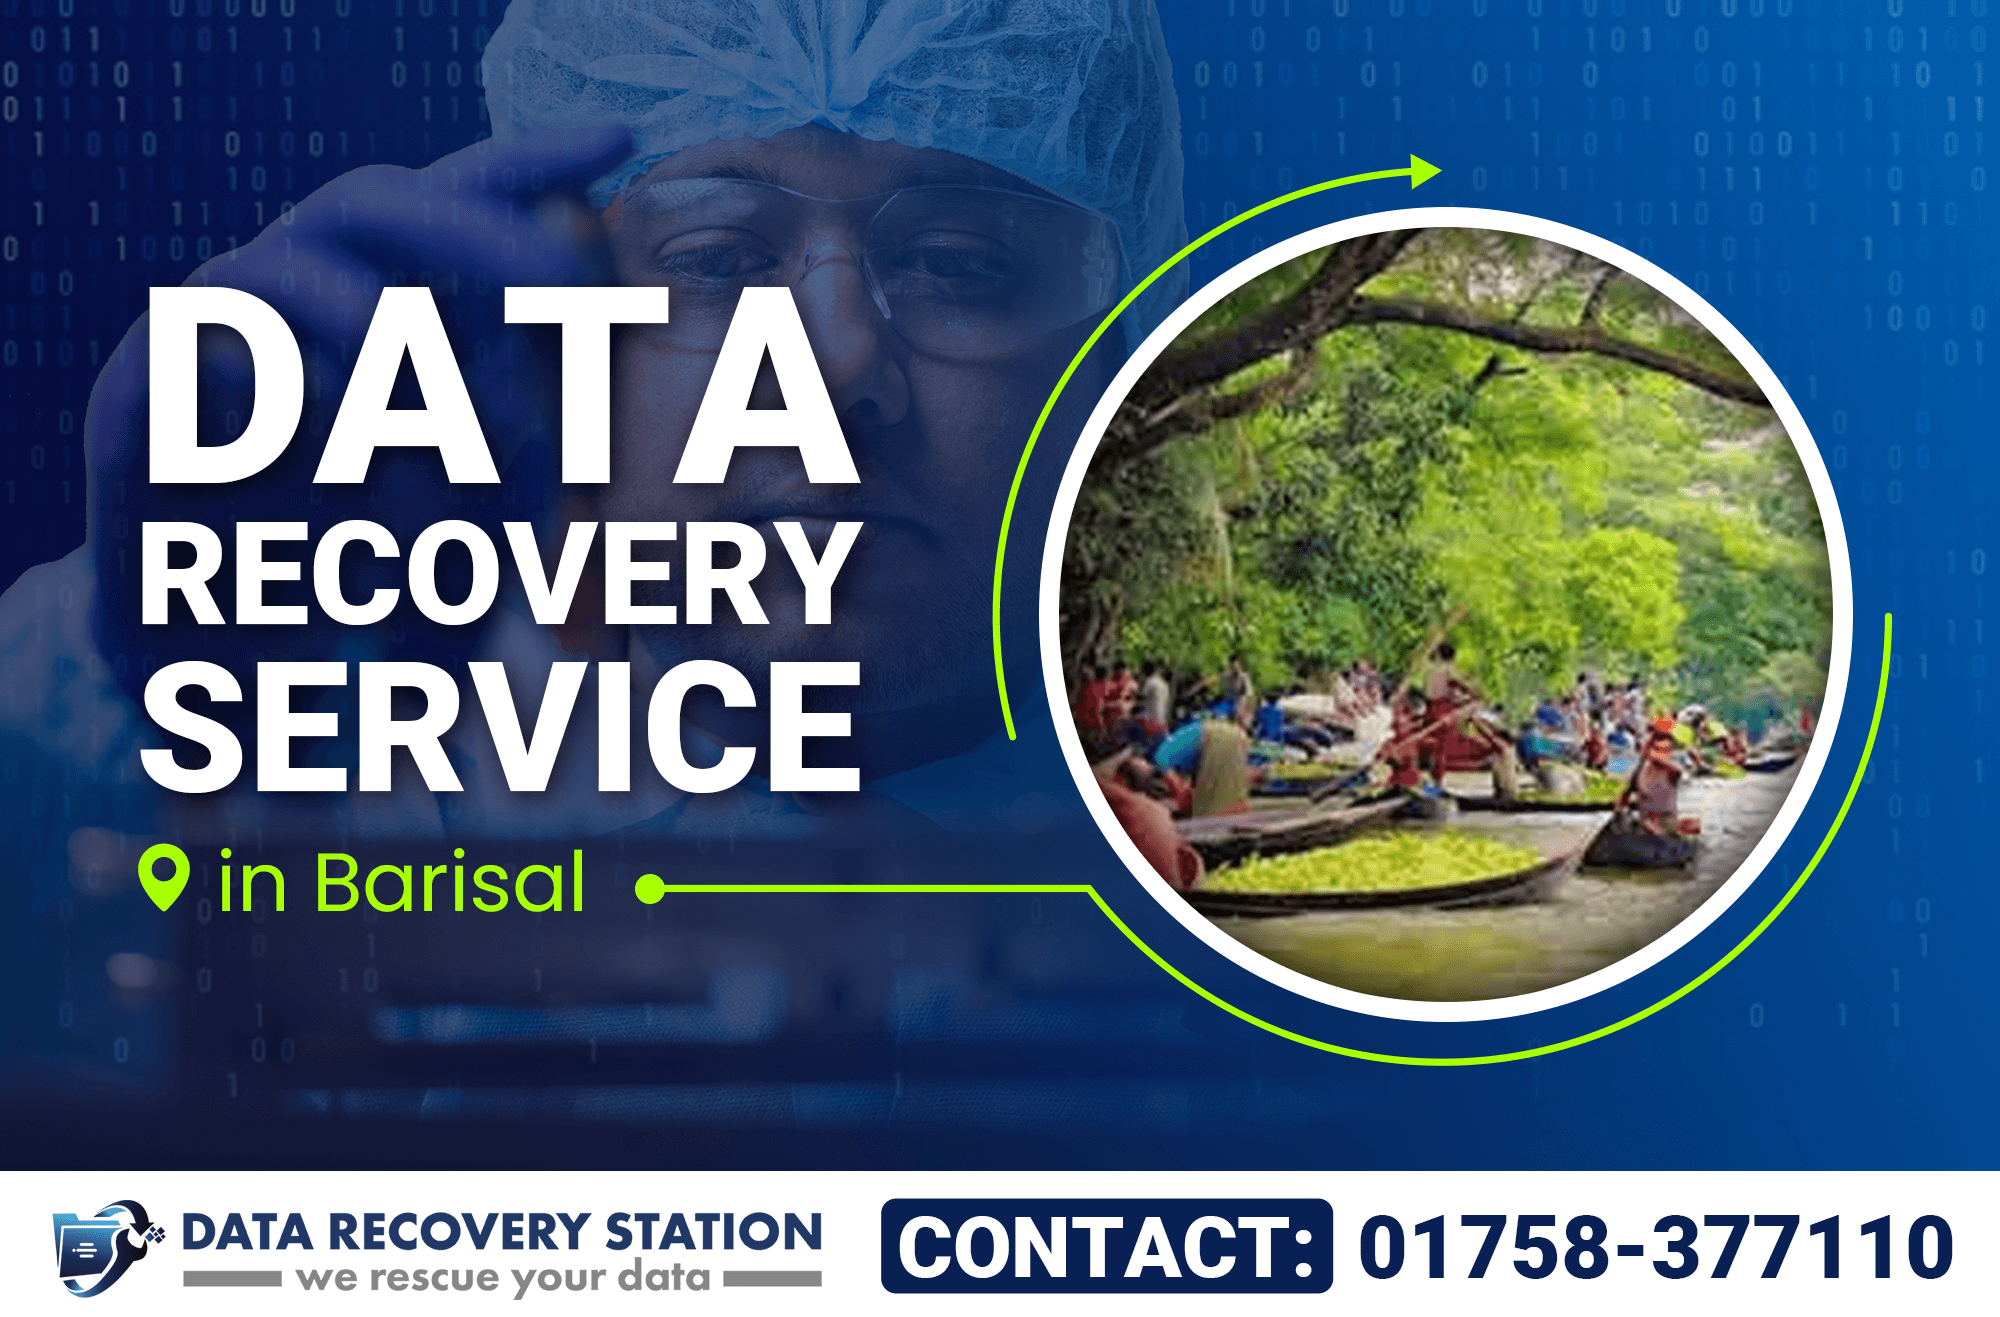 Data Recovery Service in Barisal